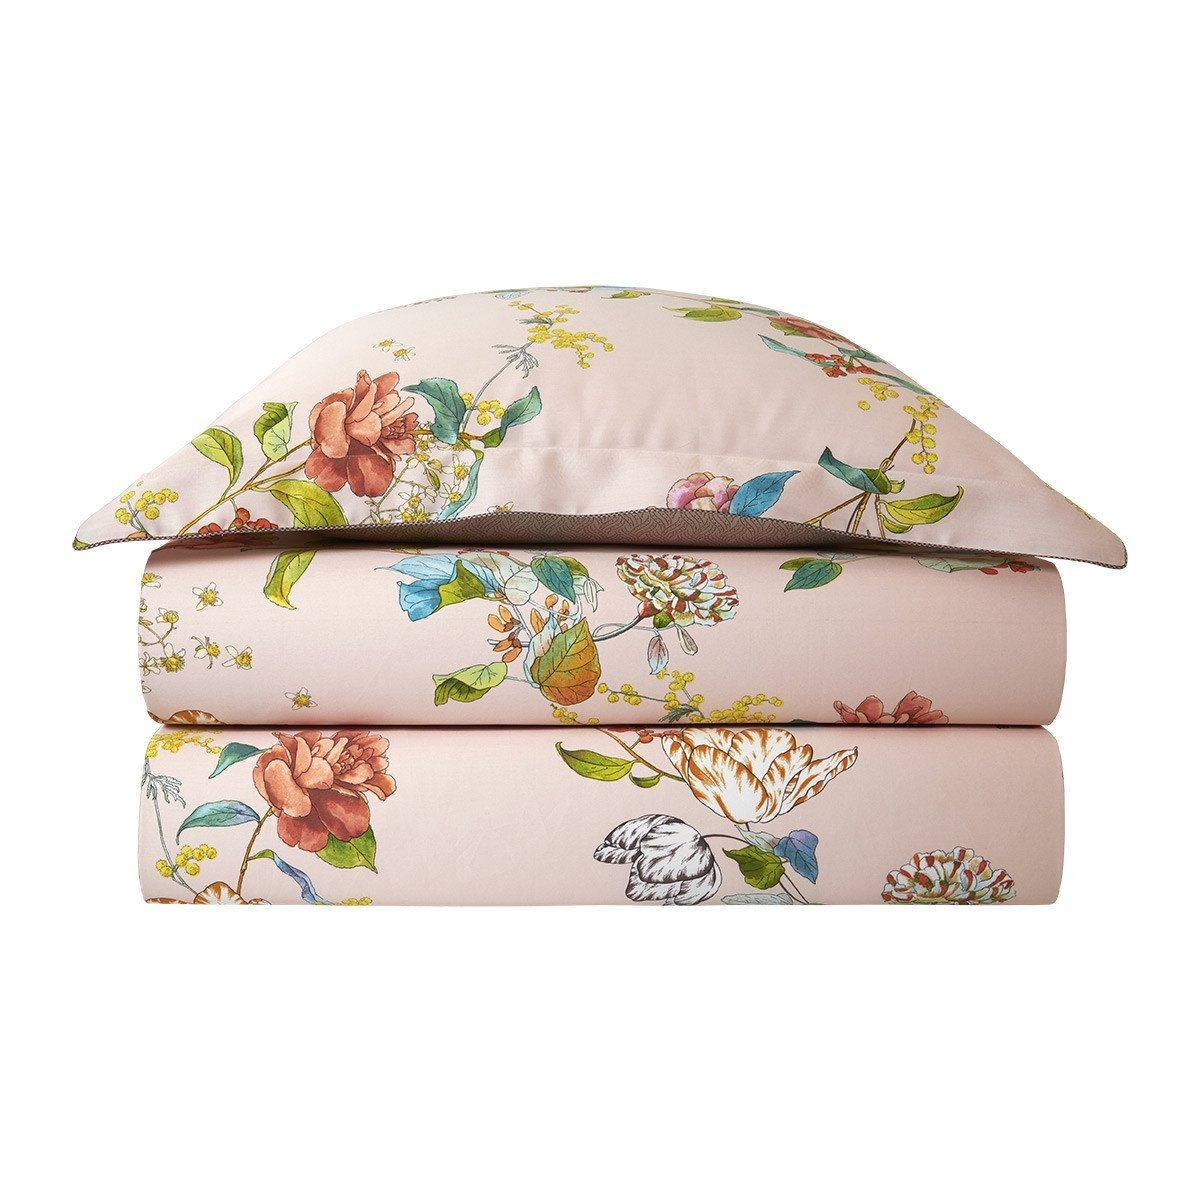 Fig Linens - Yves Delorme Bedding - Bagatelle Collection